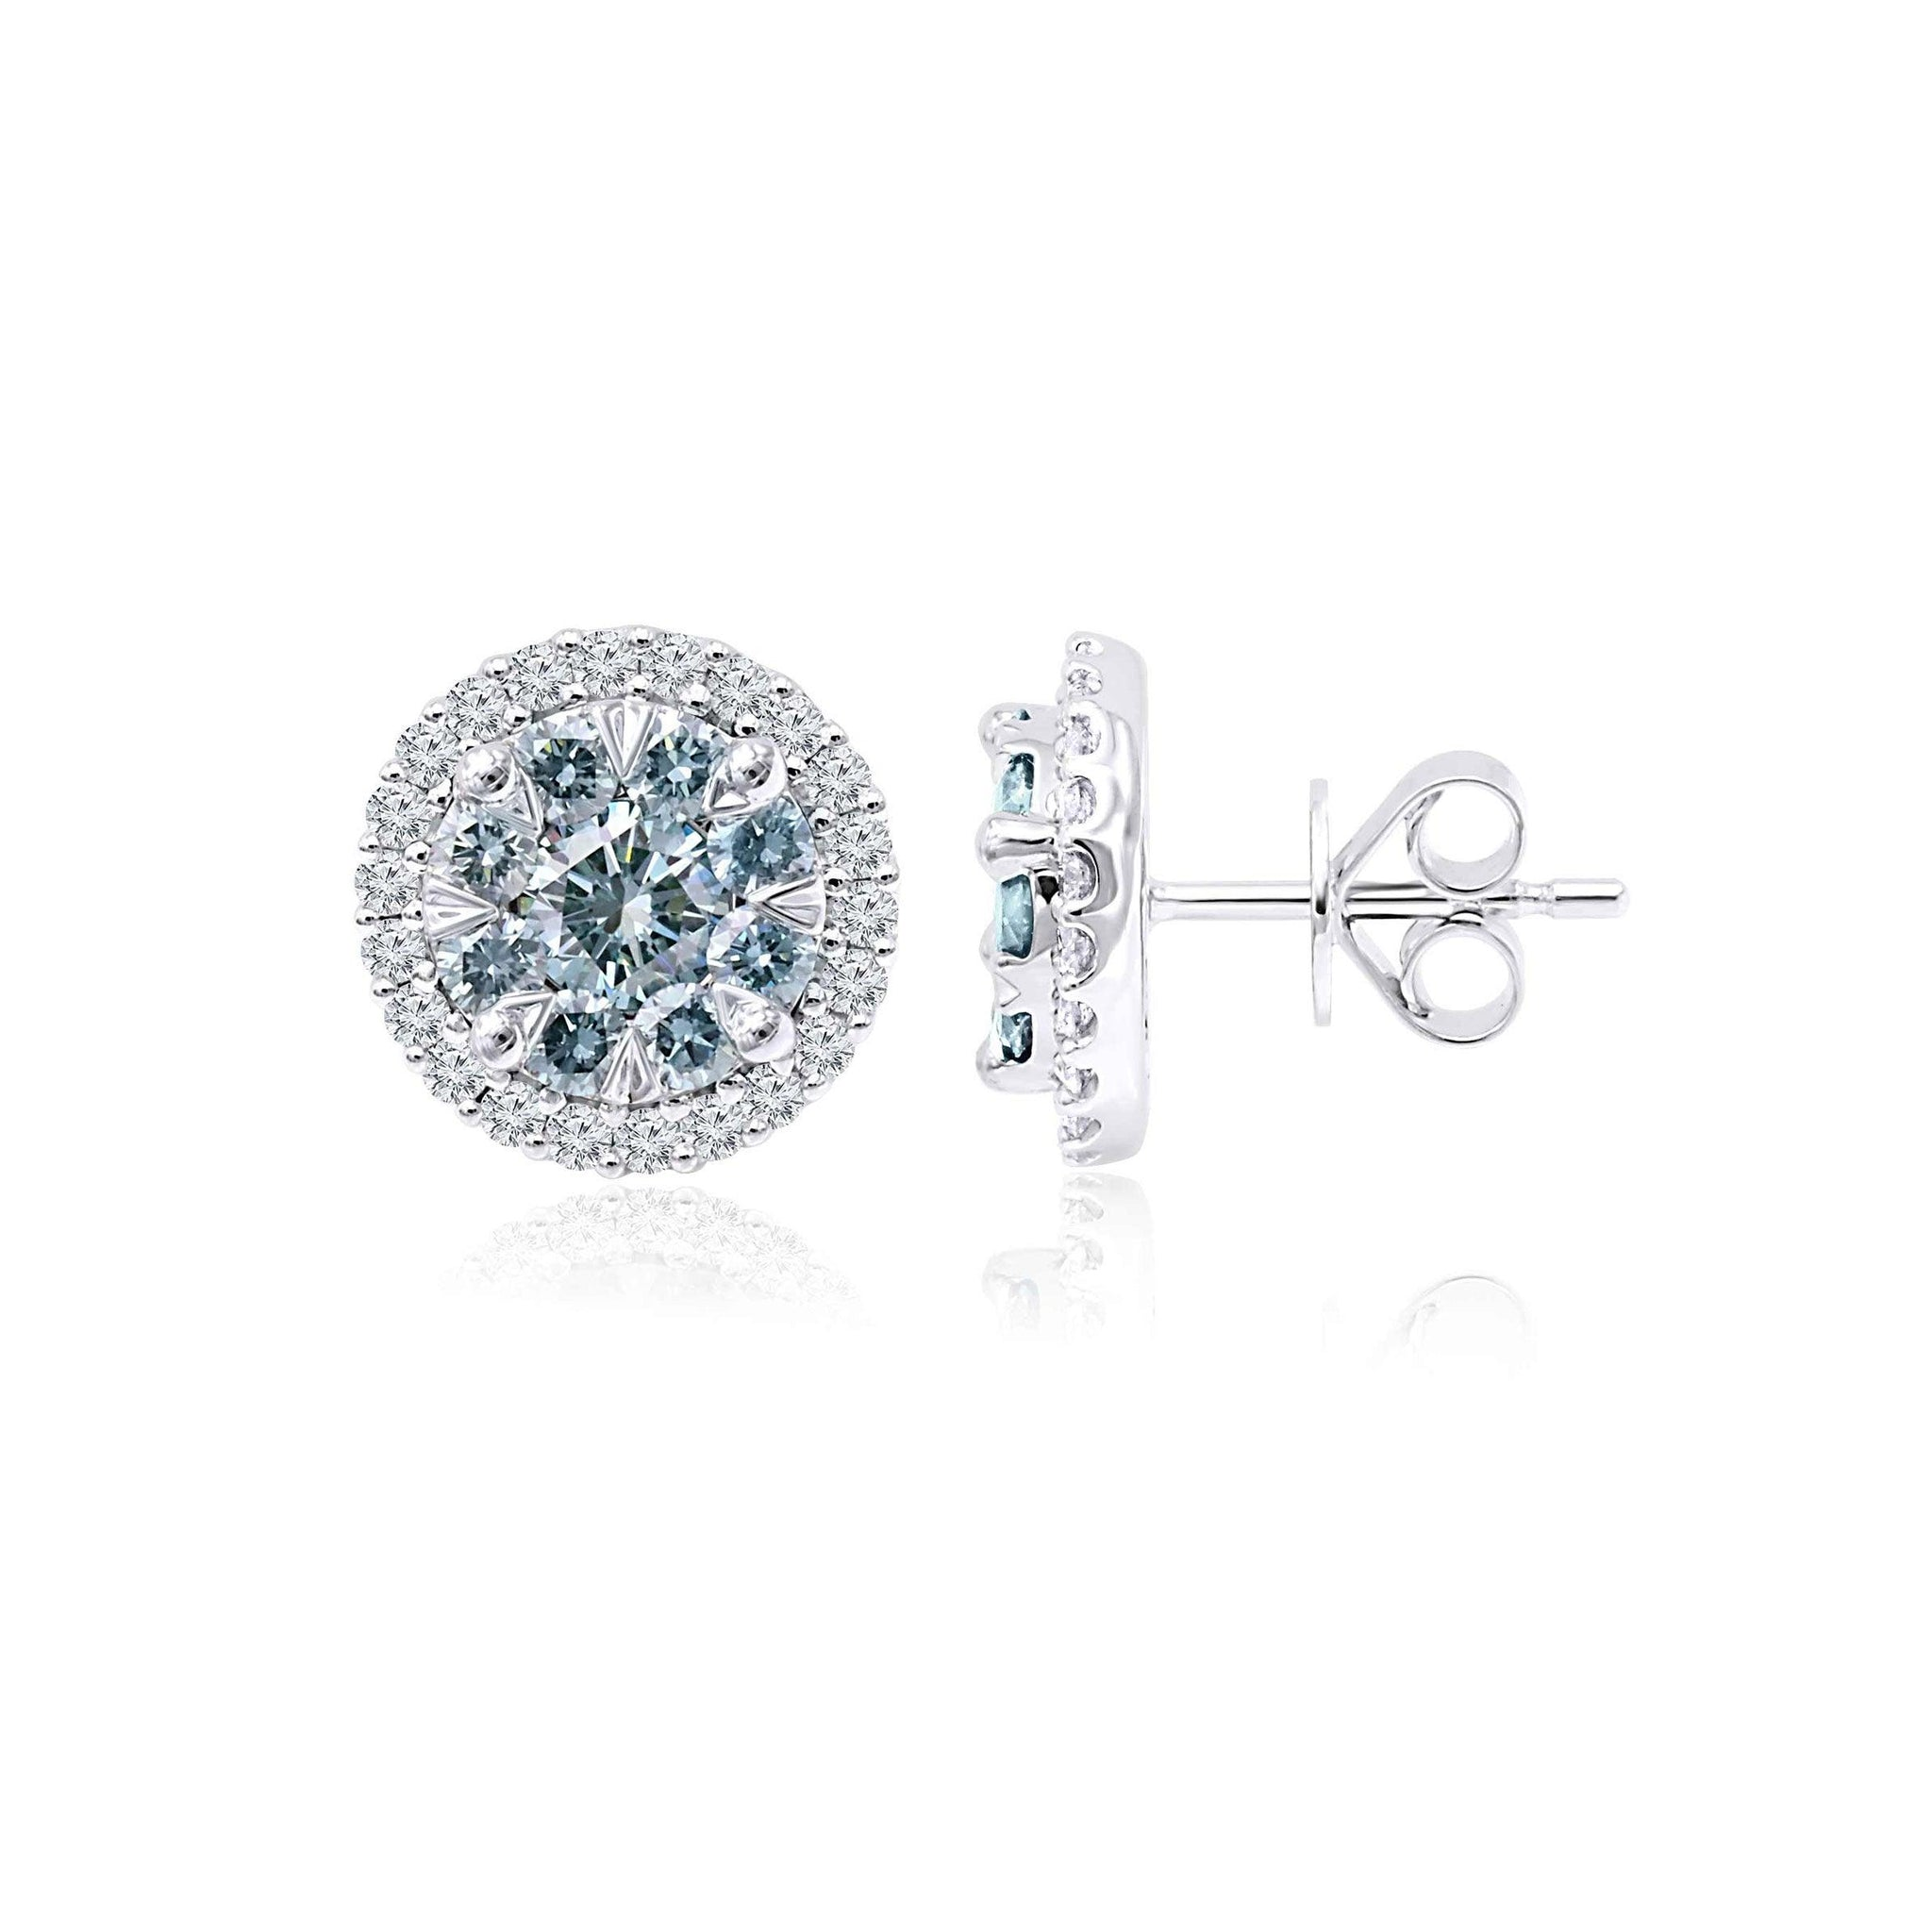 1.85 Ct. T.W. Ice Blue And White Lab Grown Diamond 14K White Gold Earrings